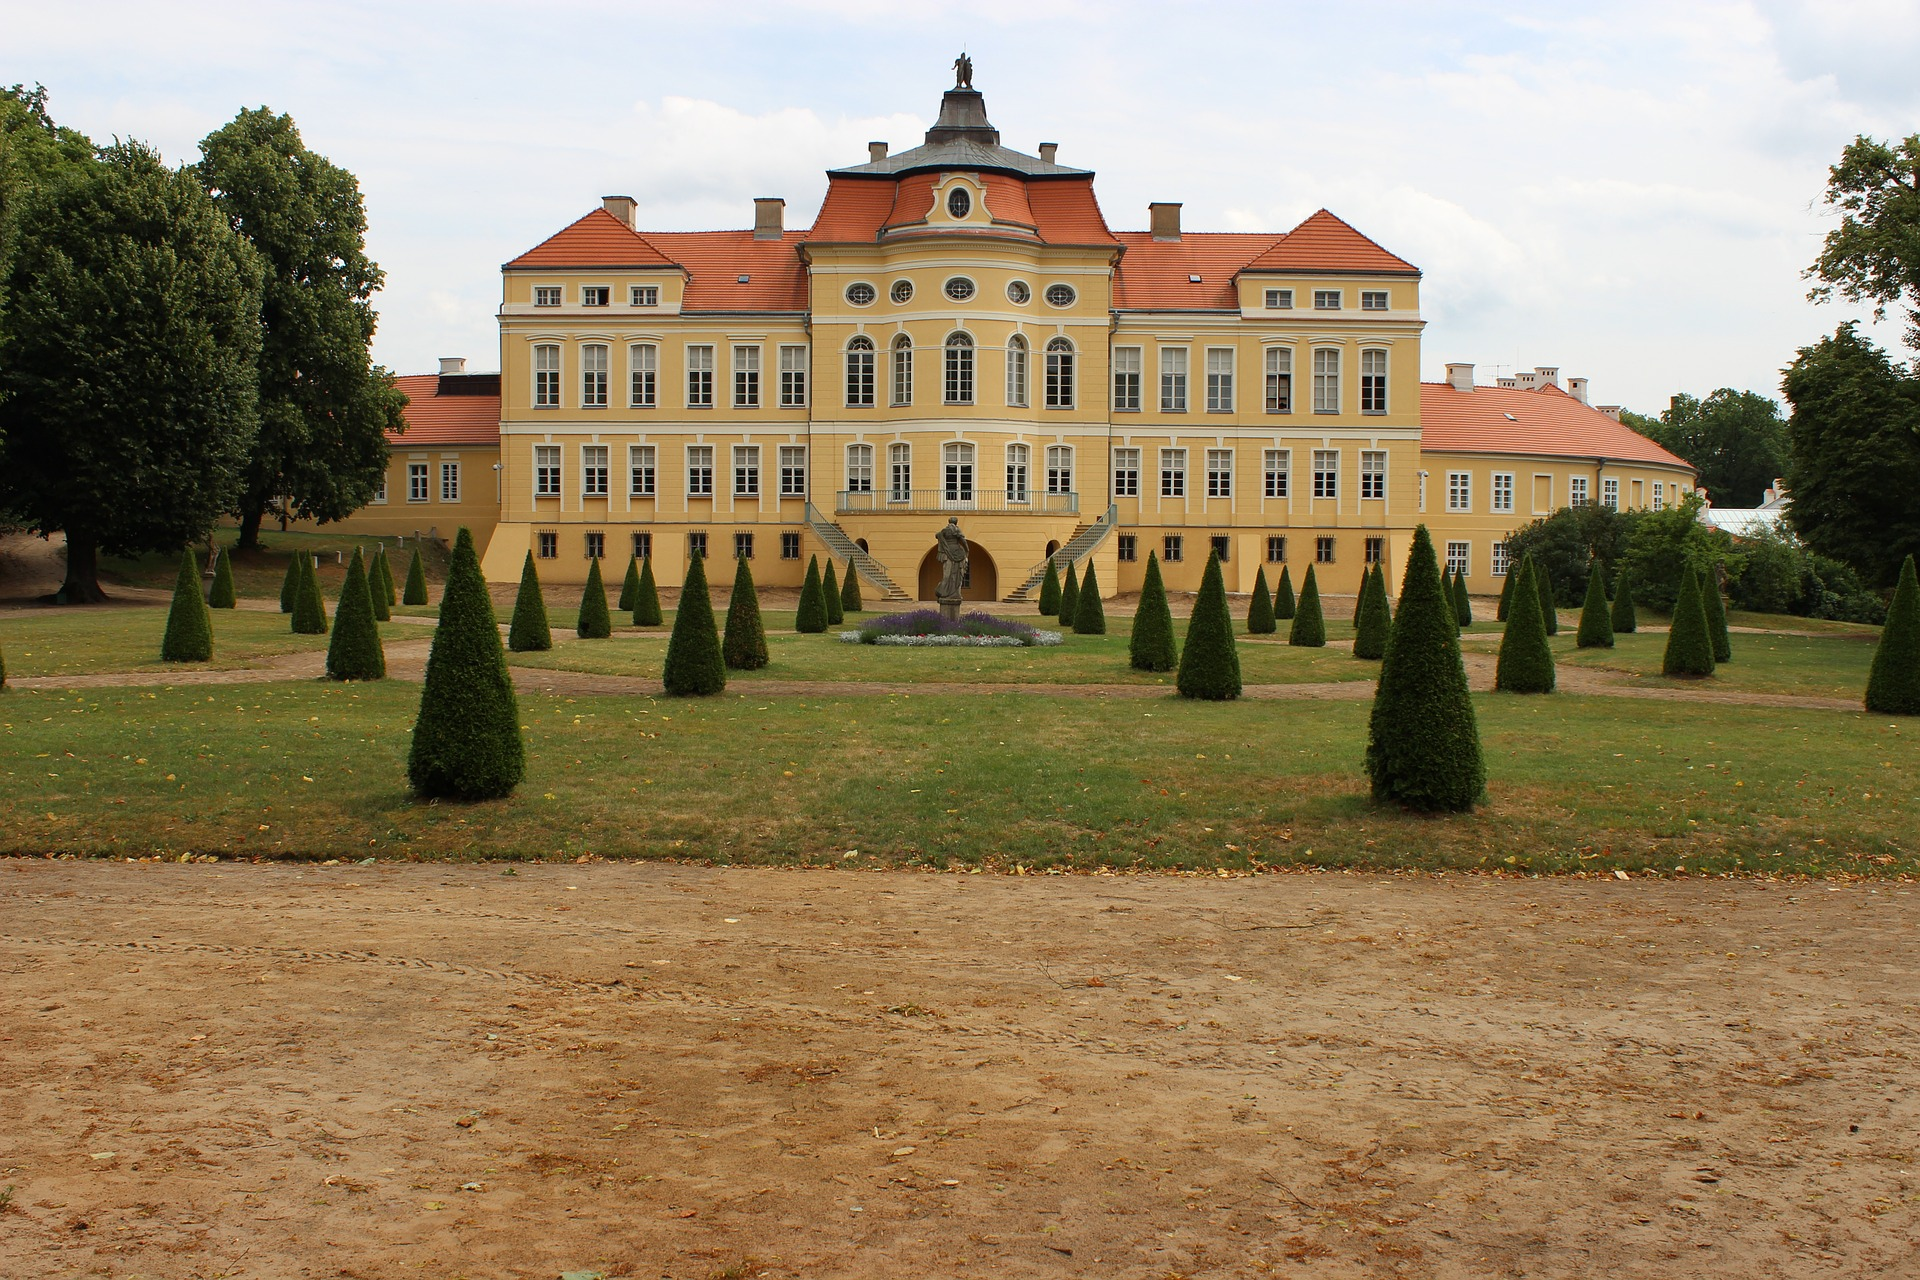 Baroque Rogalin Palace in Poland with exhibition of Paul Delaroche, Claude Monet, and Jan Matejko's Joanna d'Arc.